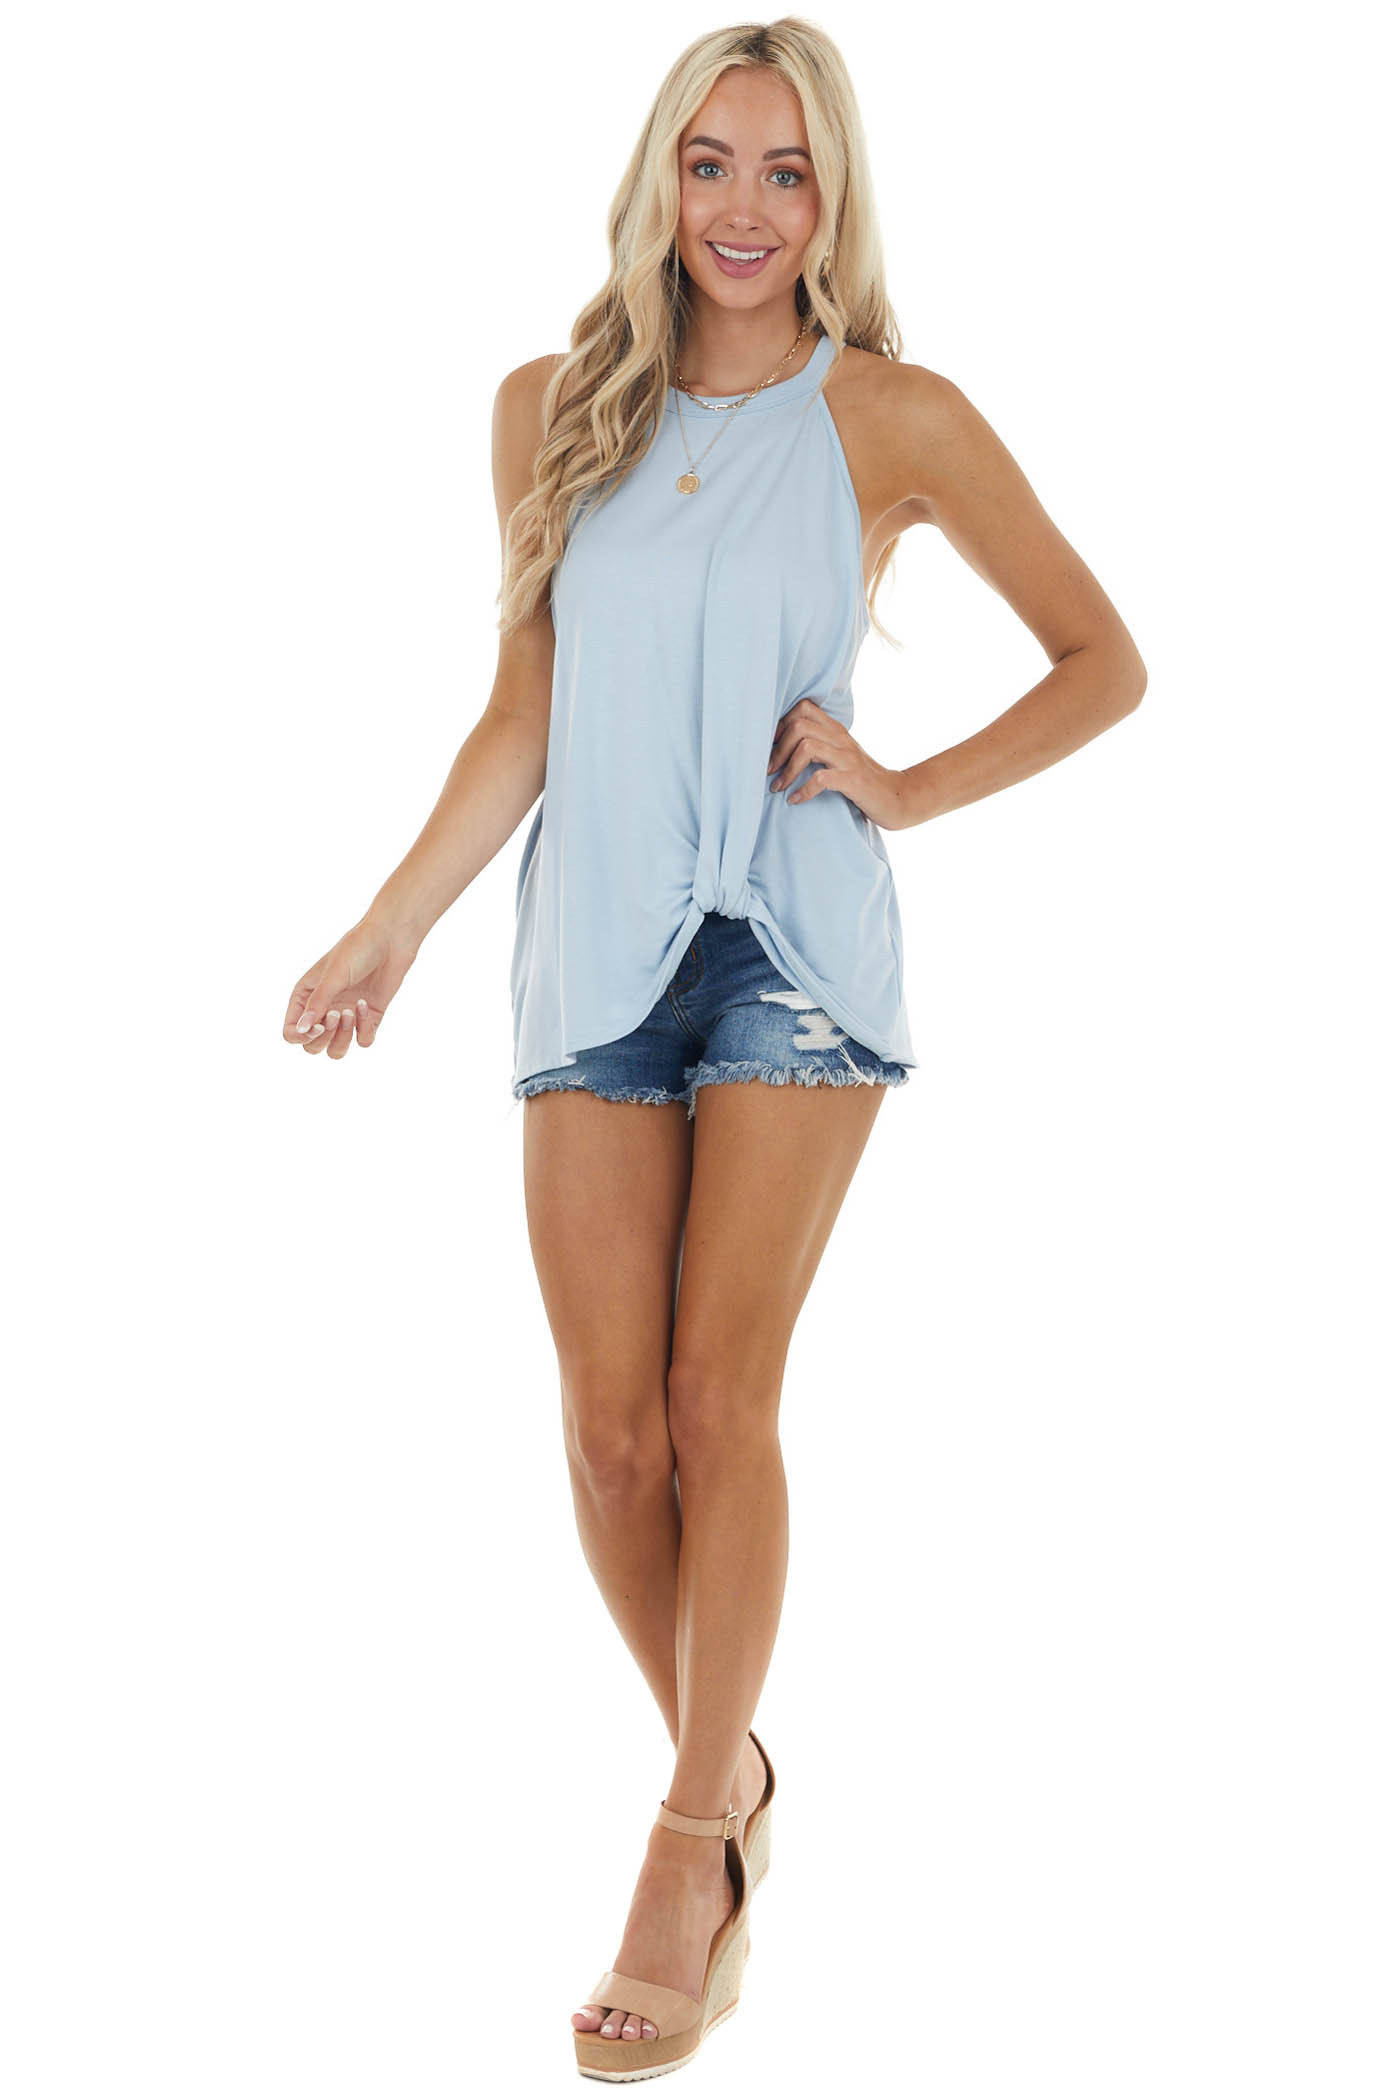 Powder Blue Front Twist Stretchy Knit Top with Halter Neck